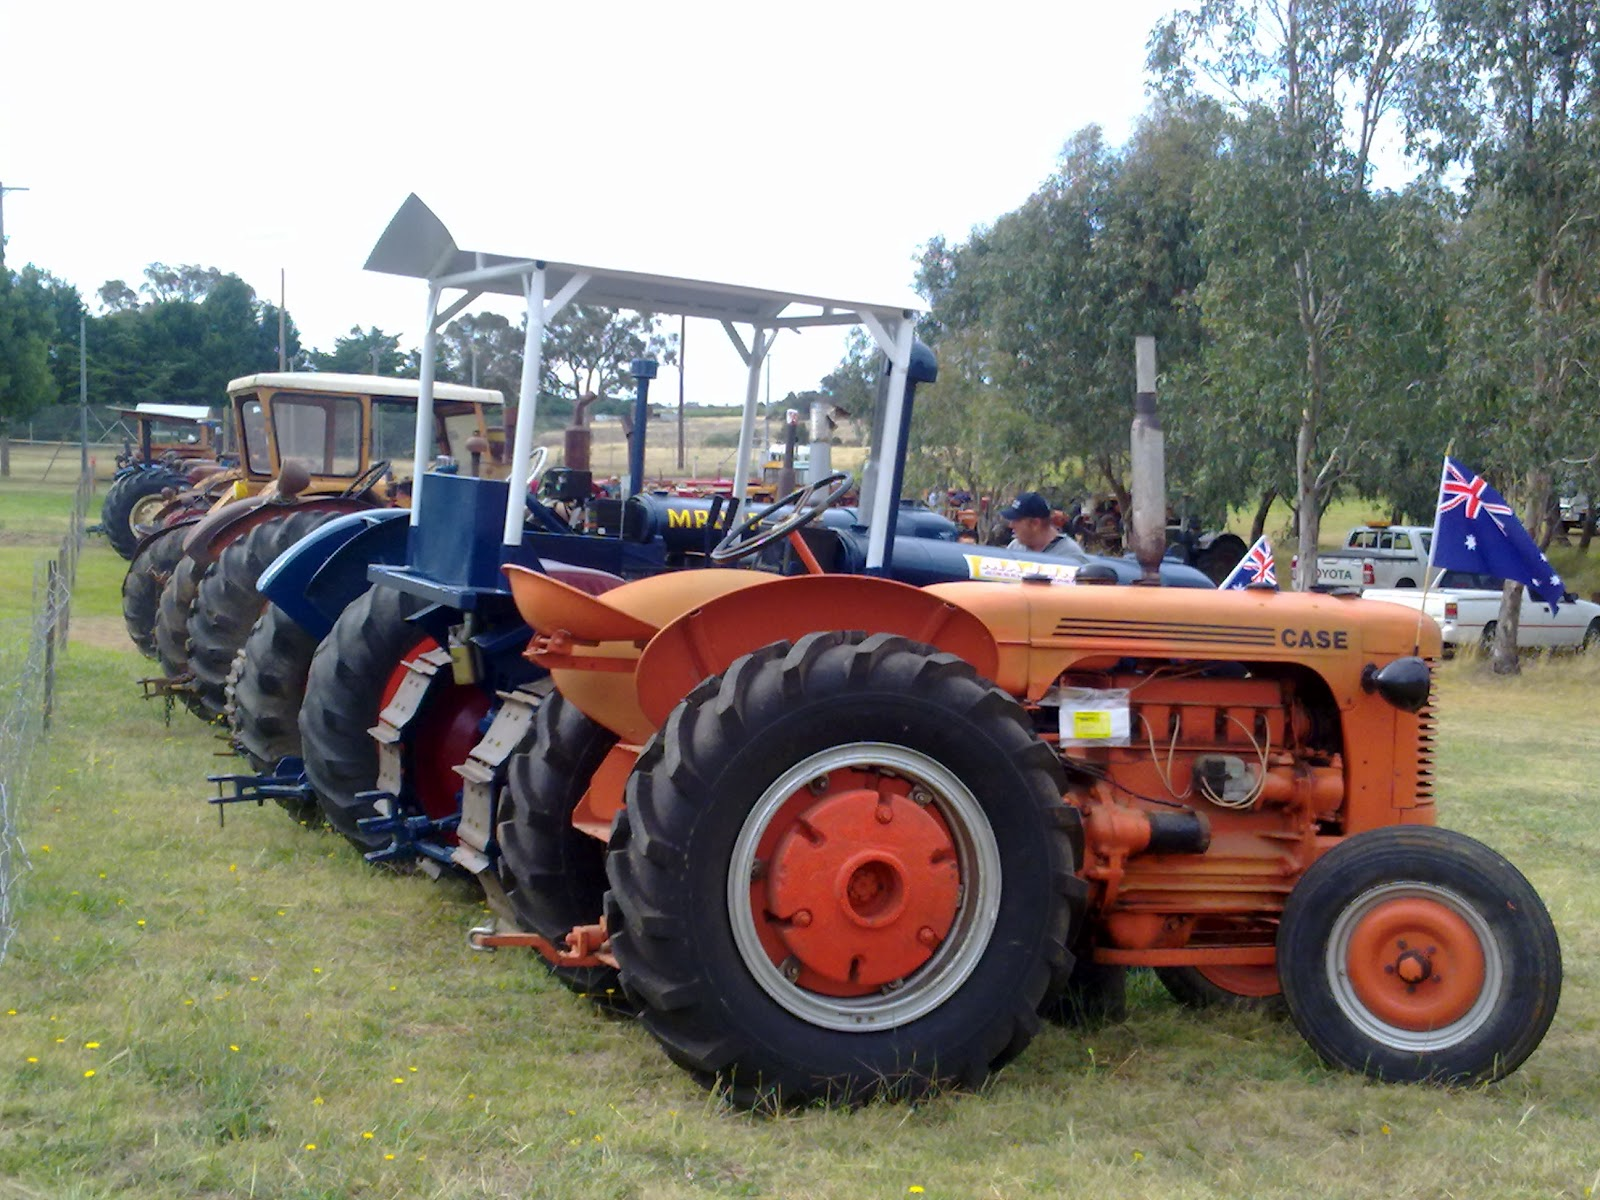 Tractor Pull Tractors : Road to rome australia day at wombat nsw the tractor